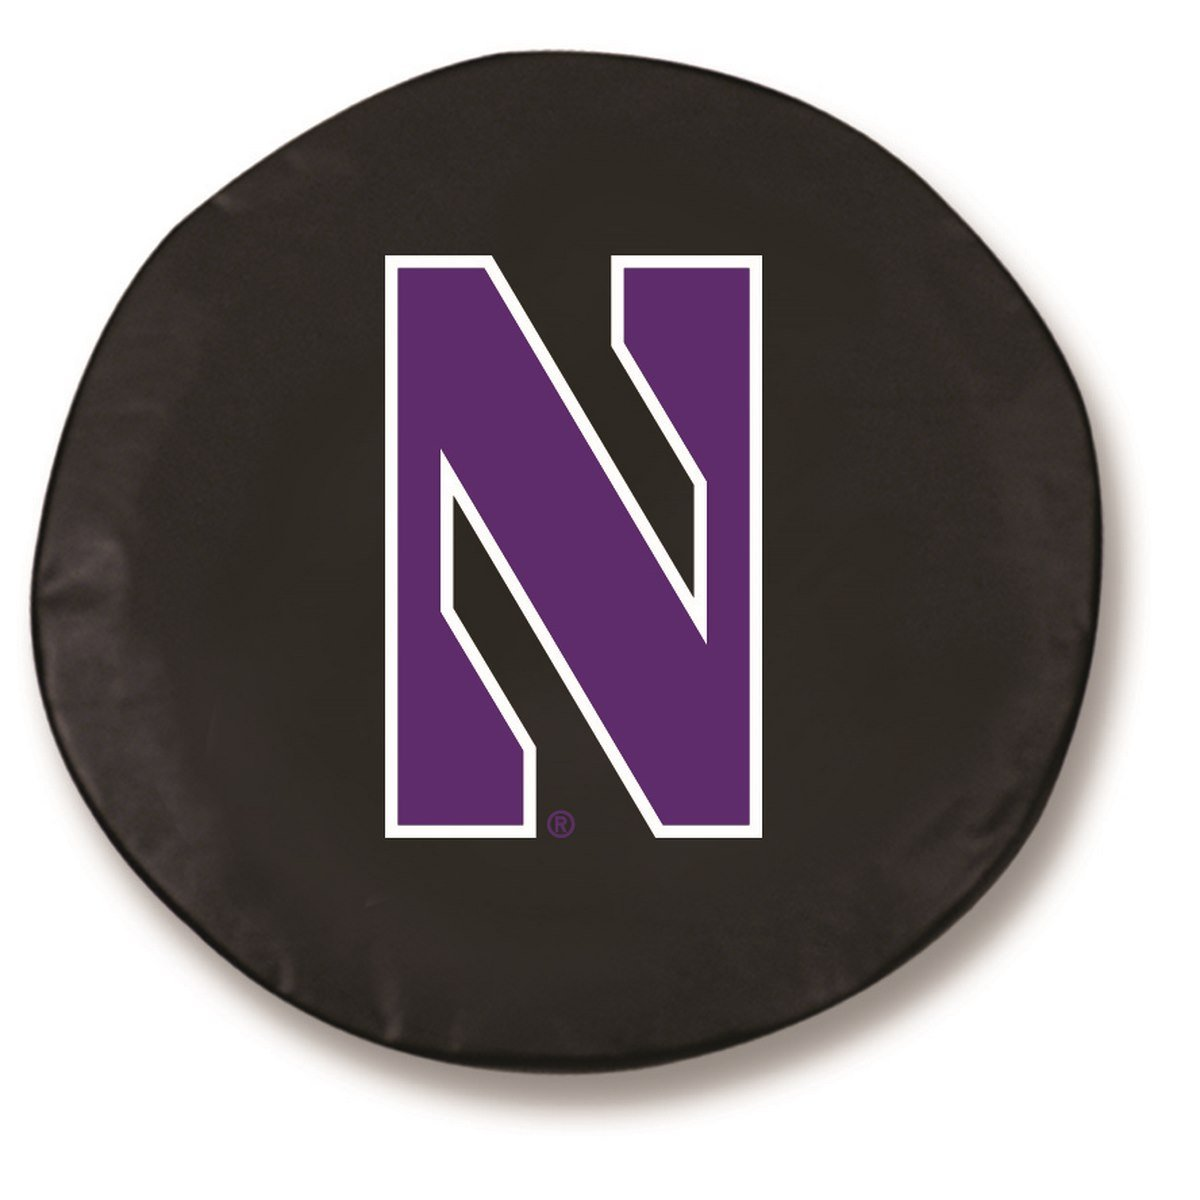 Northwestern Wildcats Hbs Black Vinyl Fitted Spare Car Tire Cover Wheel Cover Spare Tire Covers Holland Bar Stool